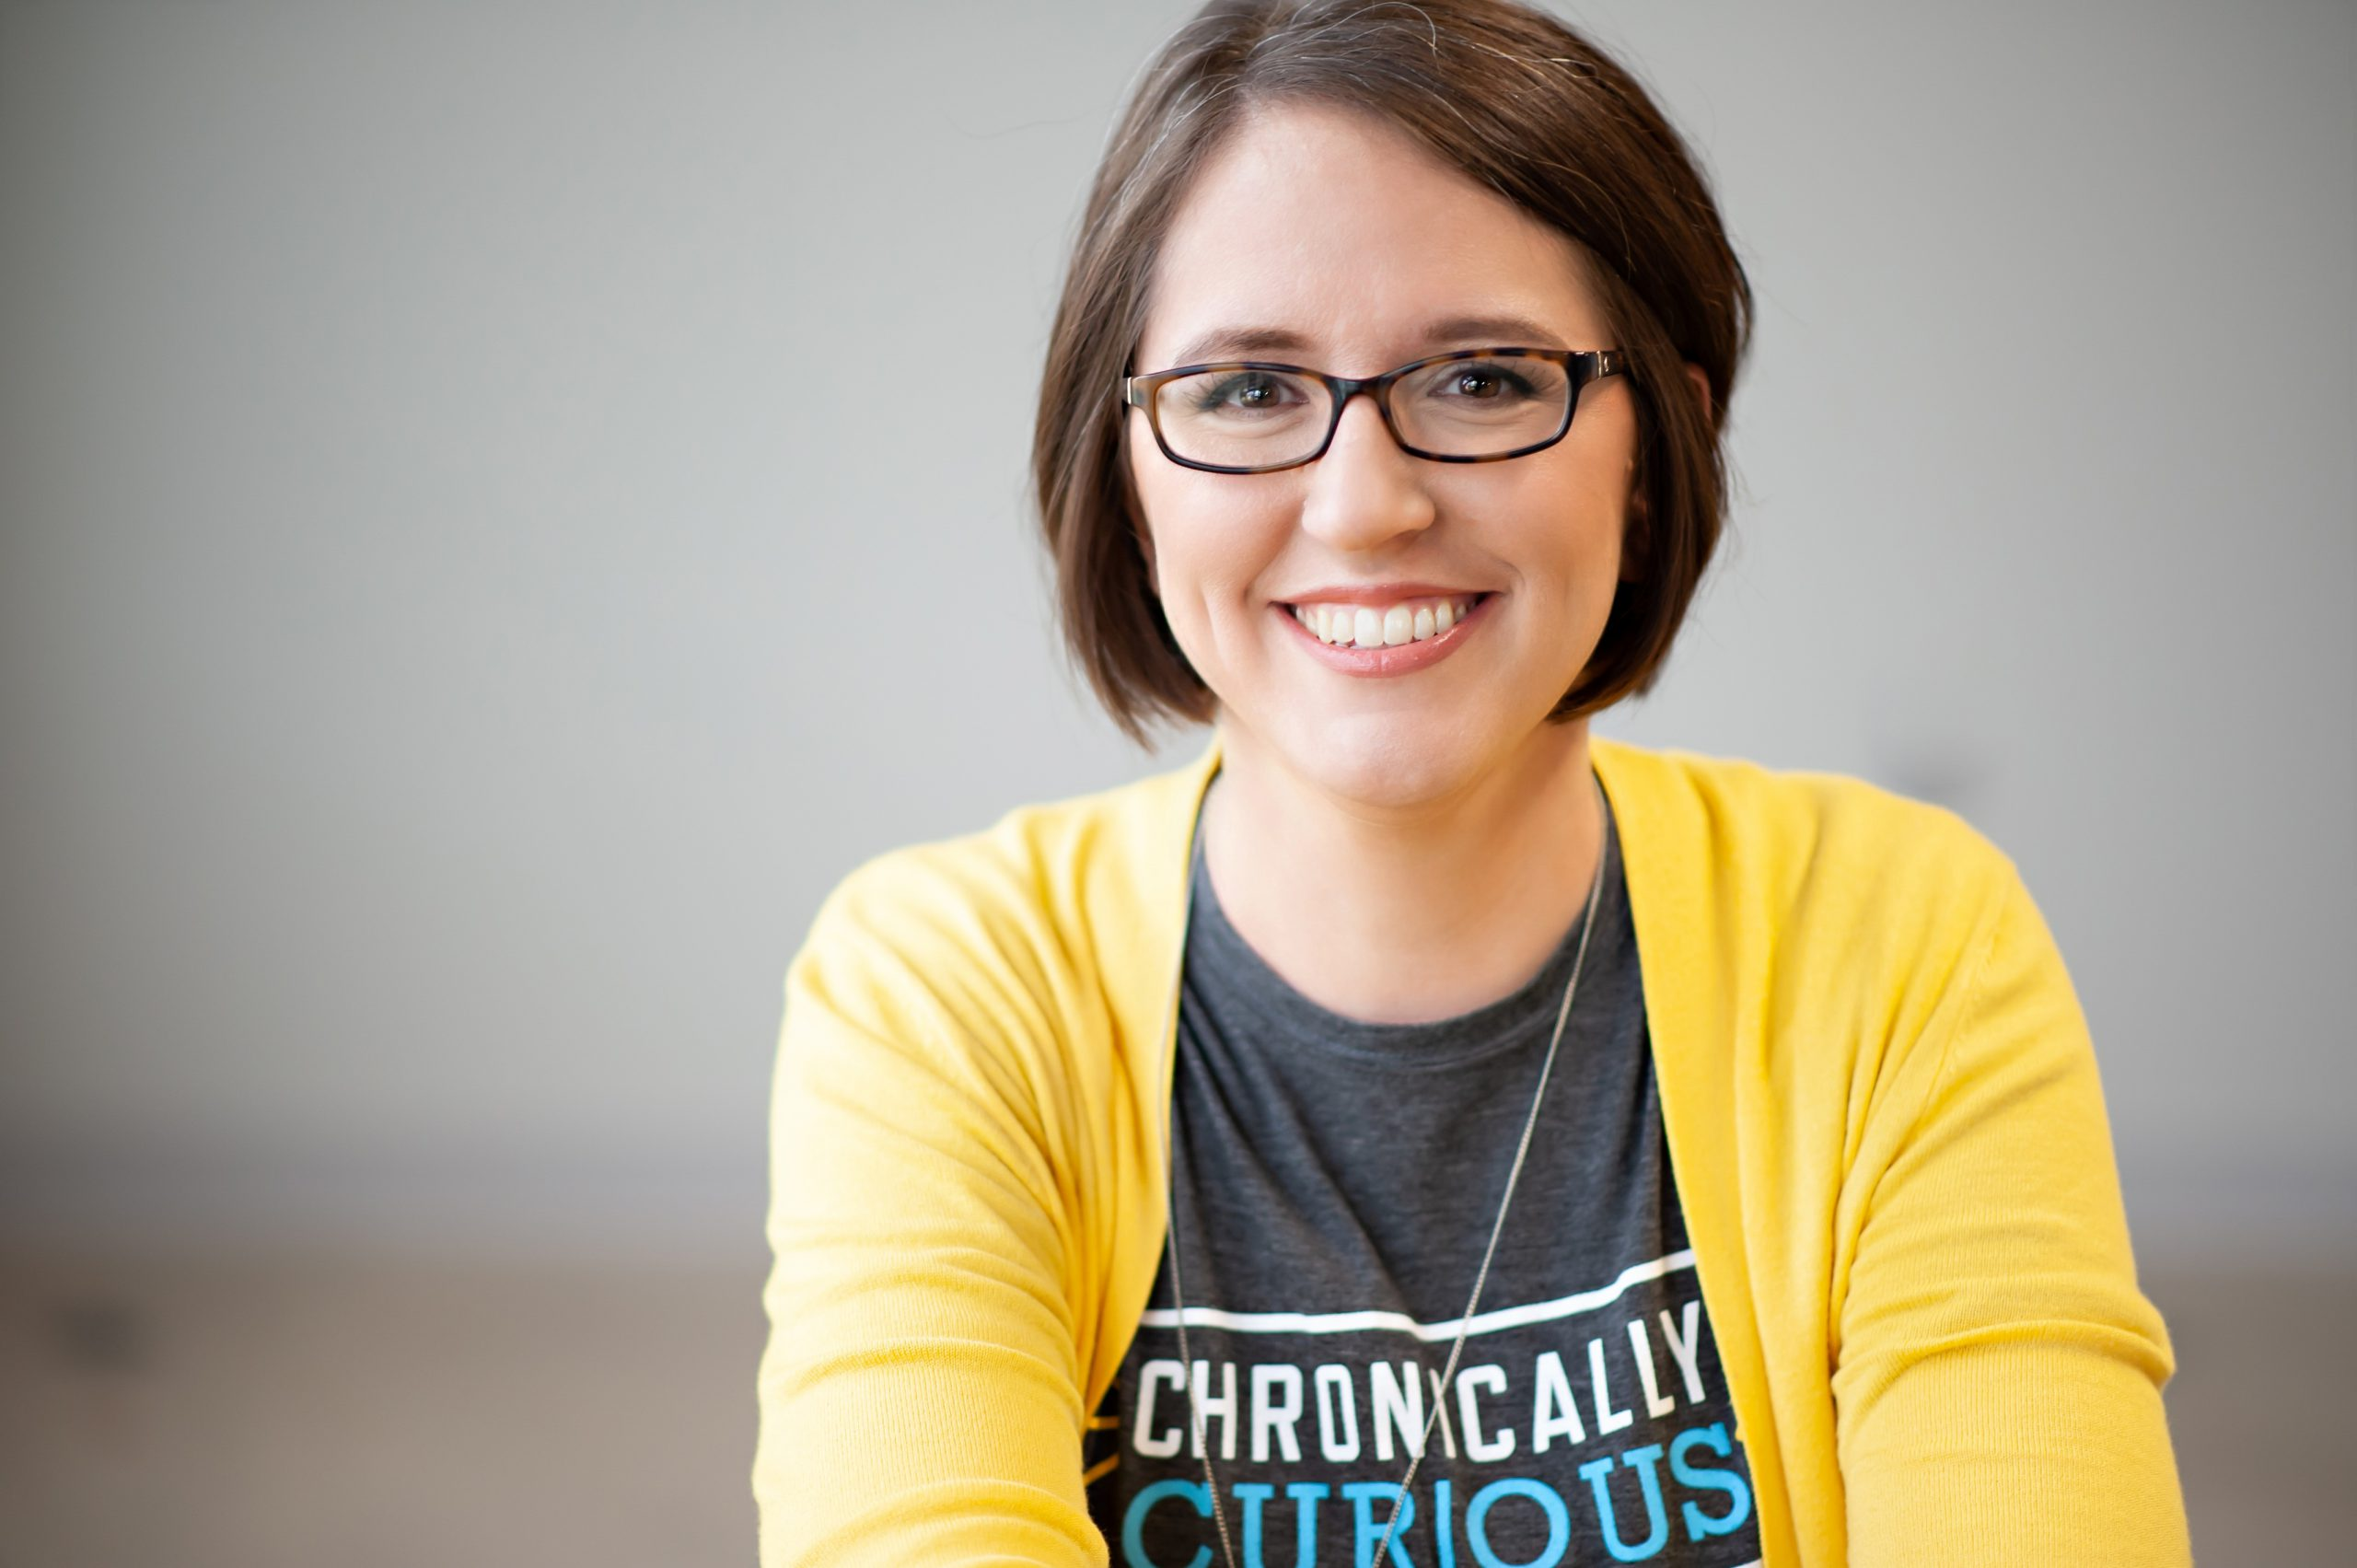 A photo of a white woman wearing glasses and a yellow cardigan.